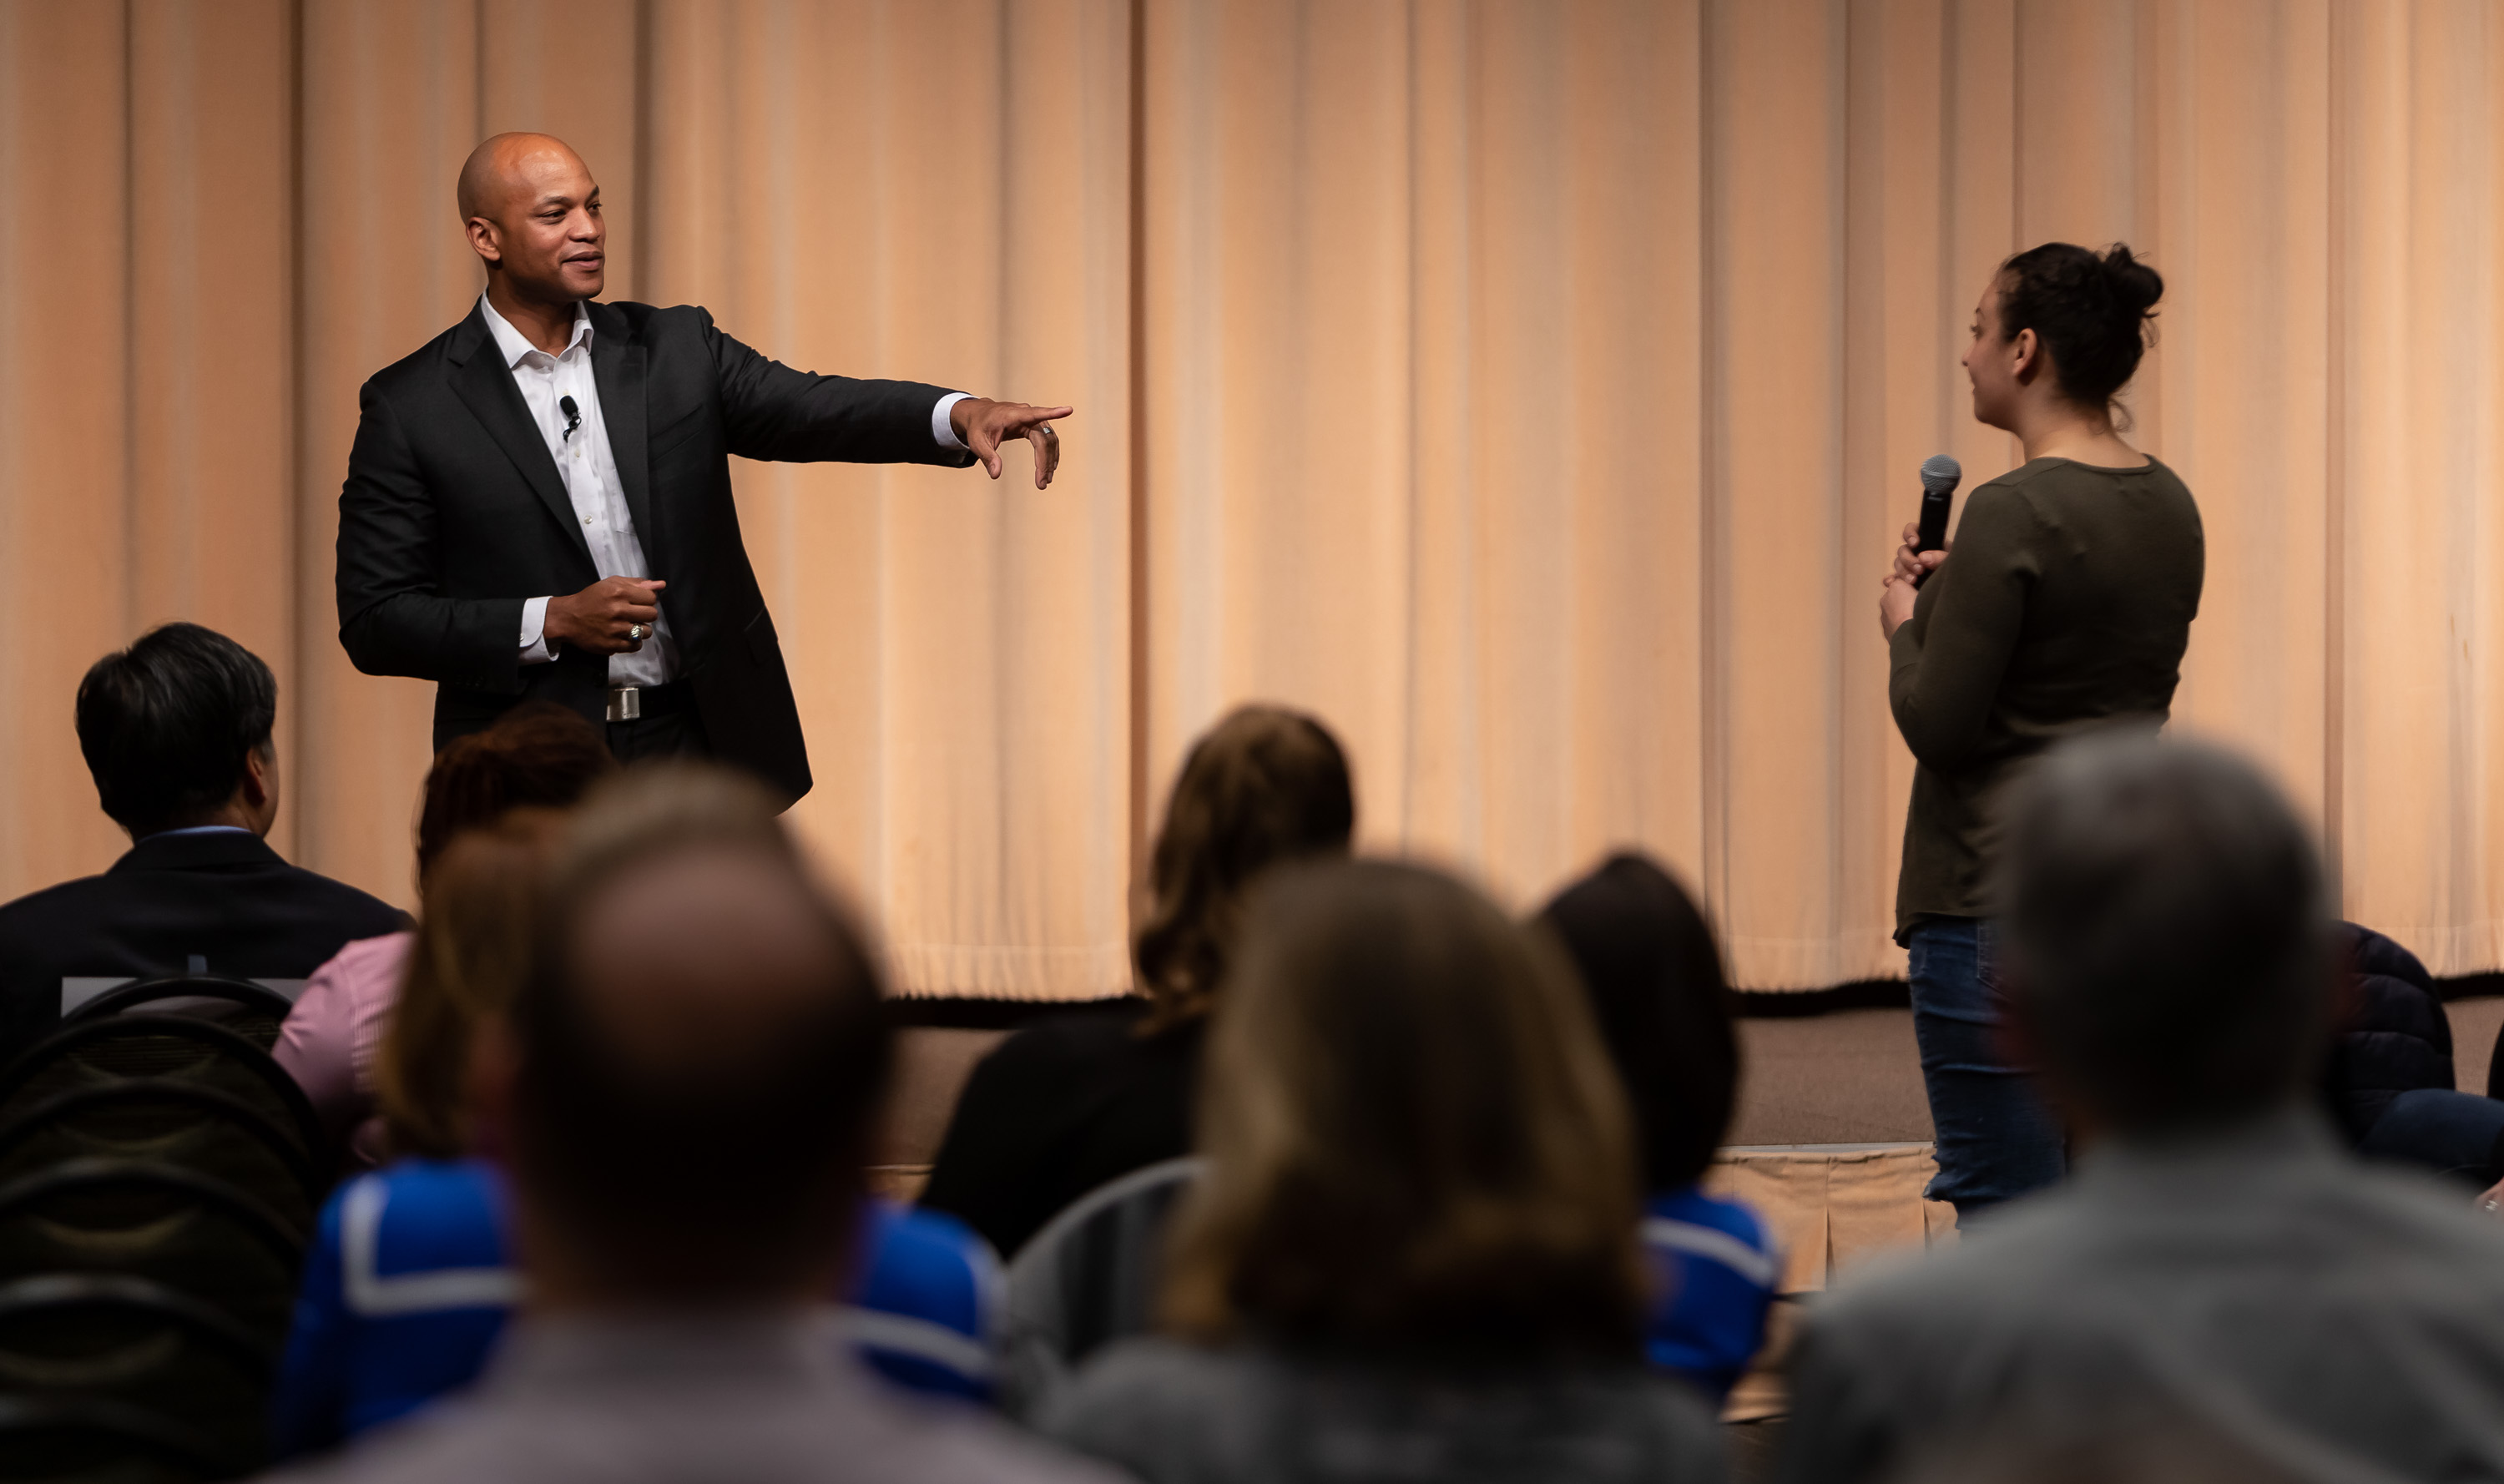 Wes Moore takes questions from the audience at the end of his presentation. (DePaul University/Jeff Carrion)